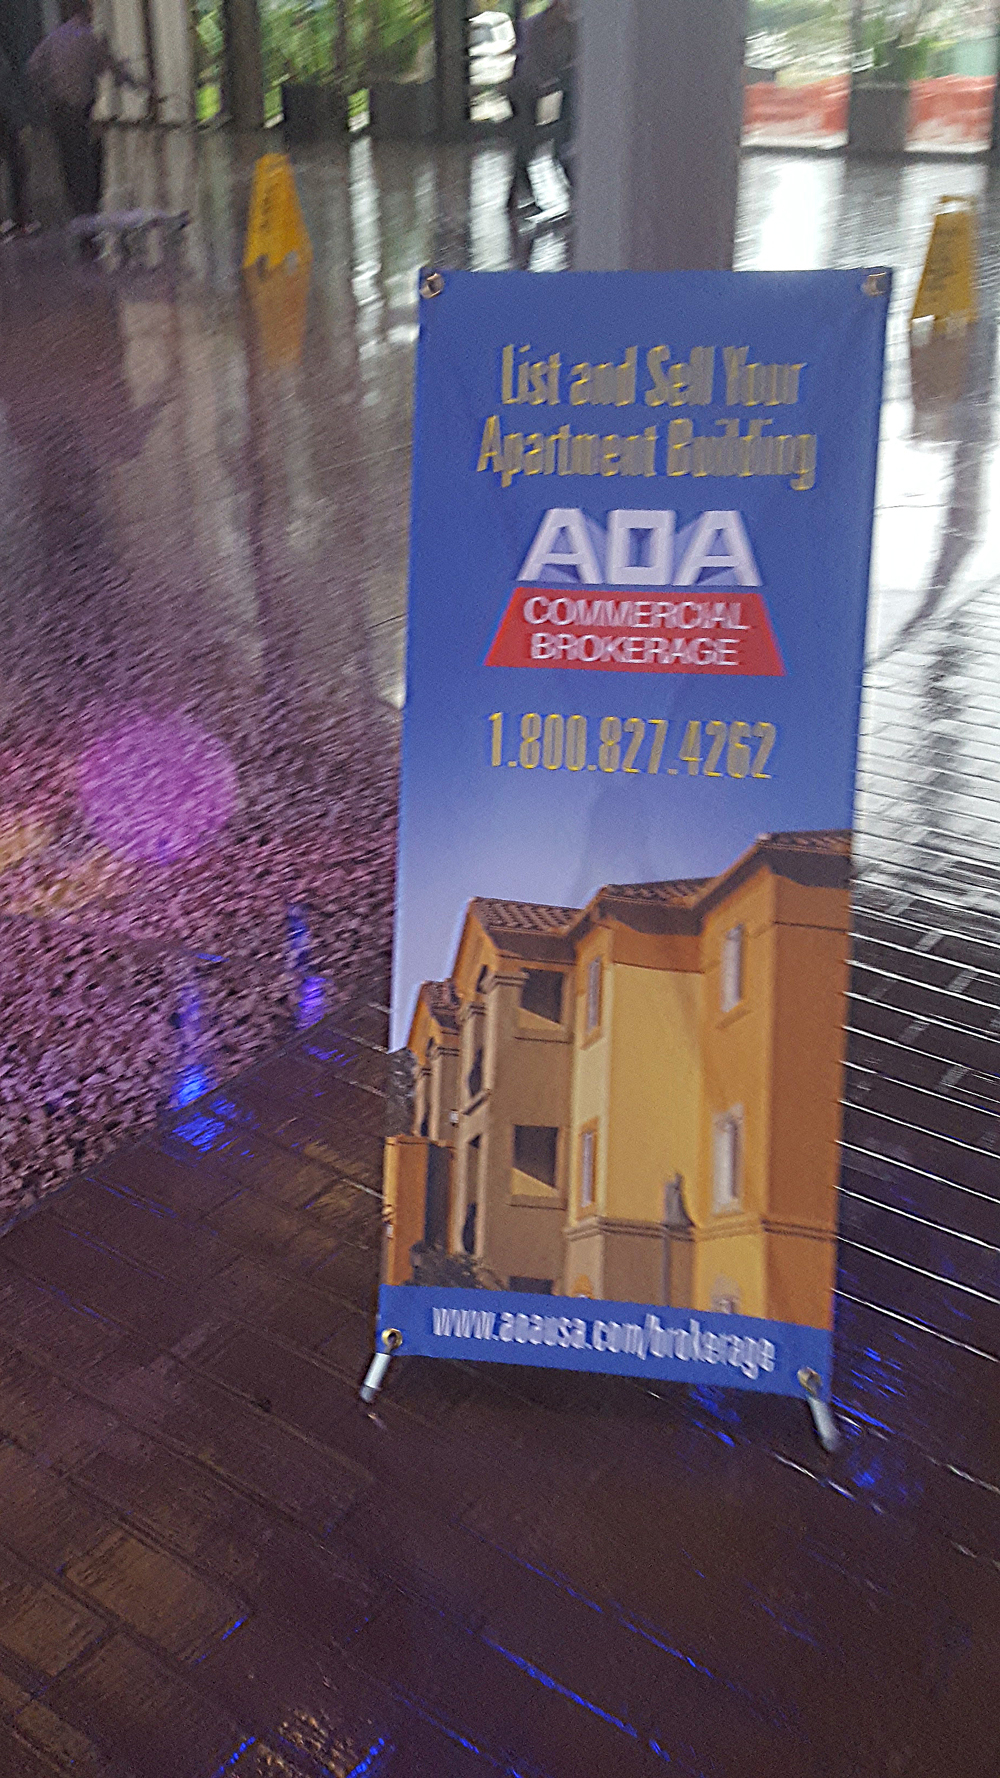 Apartment Owners Association Trade Show Entrance 2